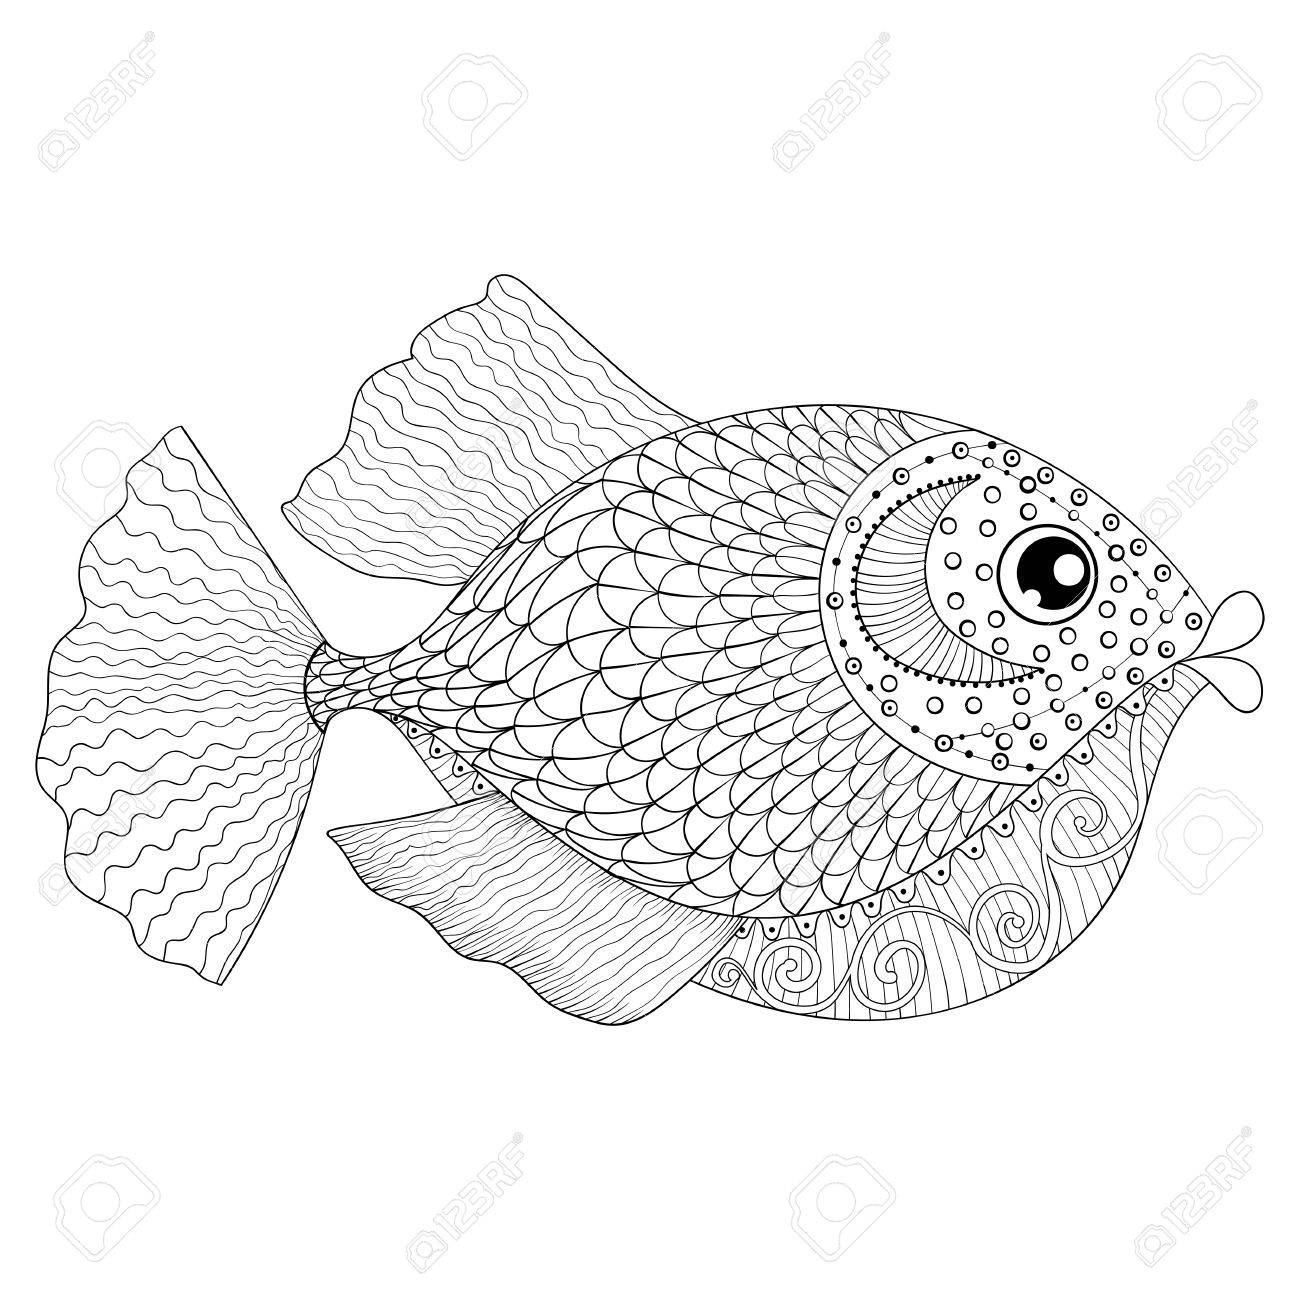 1300x1300 Hand Drawn Fish For Adult Anti Stress Coloring Pages, Post Card